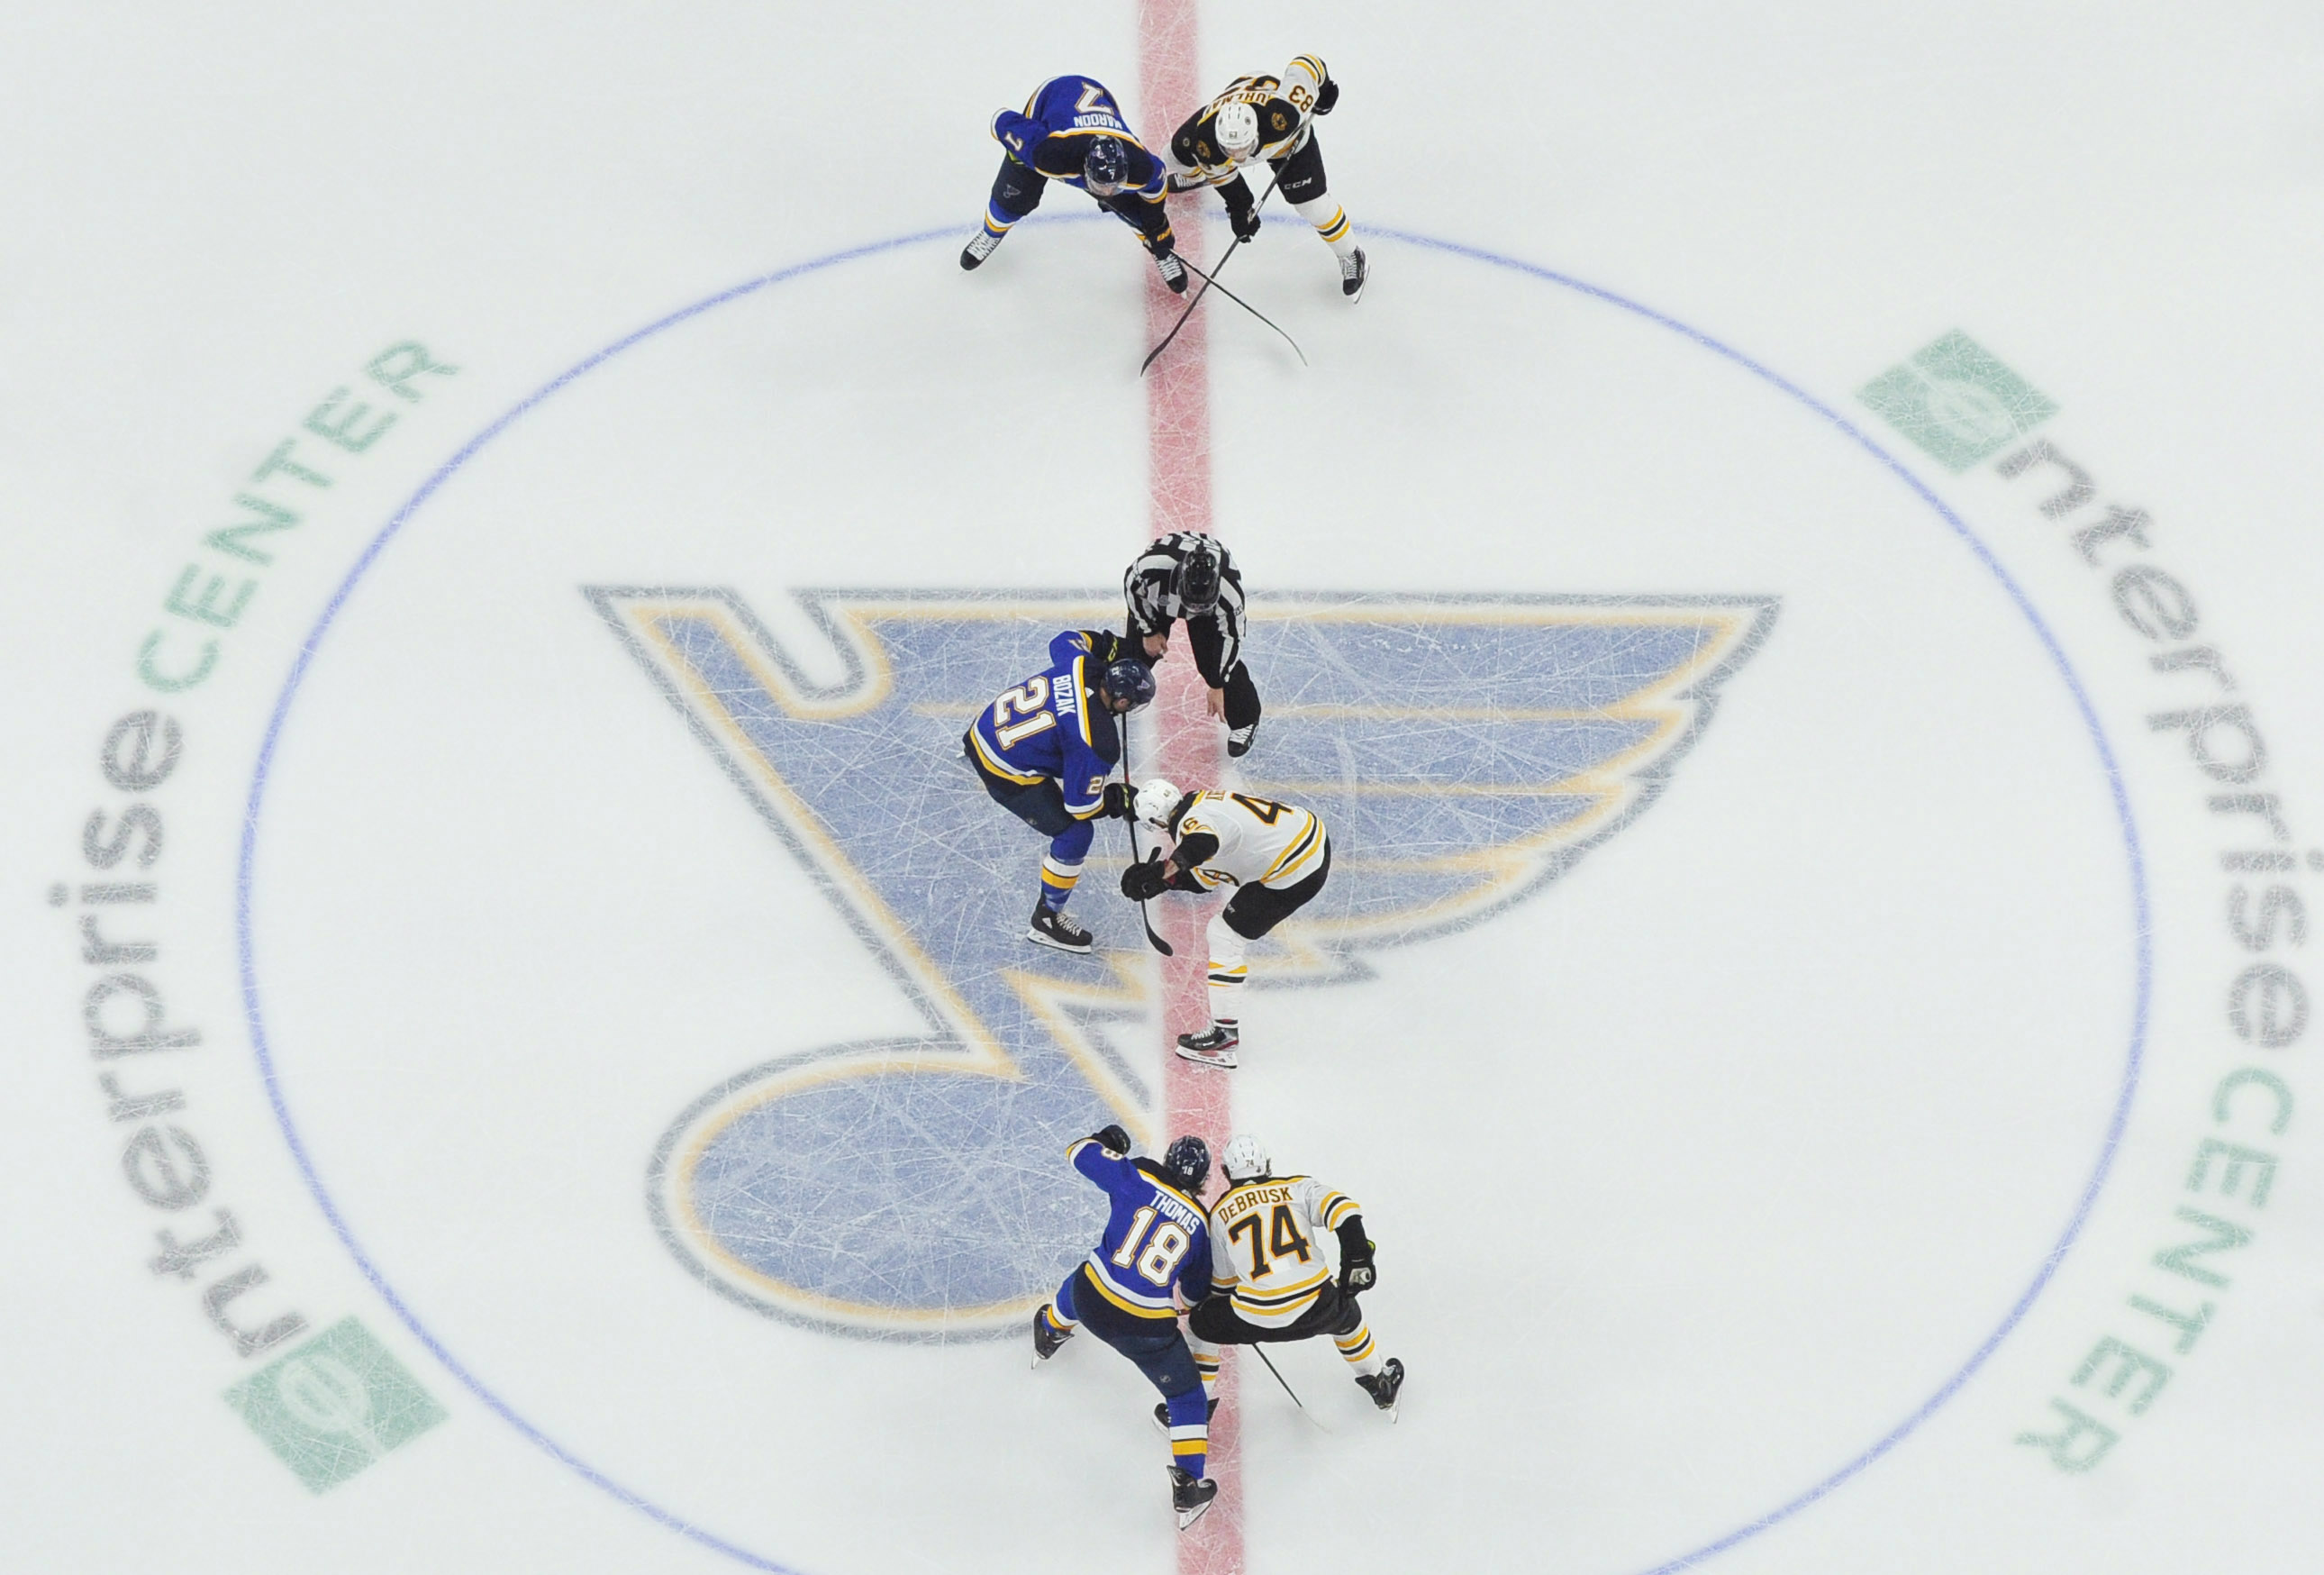 Jun 9, 2019; St. Louis, MO, USA; St. Louis Blues center Tyler Bozak (21) and Boston Bruins center David Krejci (46) take a face off in the third period in game six of the 2019 Stanley Cup Final at Enterprise Center. Mandatory Credit: Jeff Curry